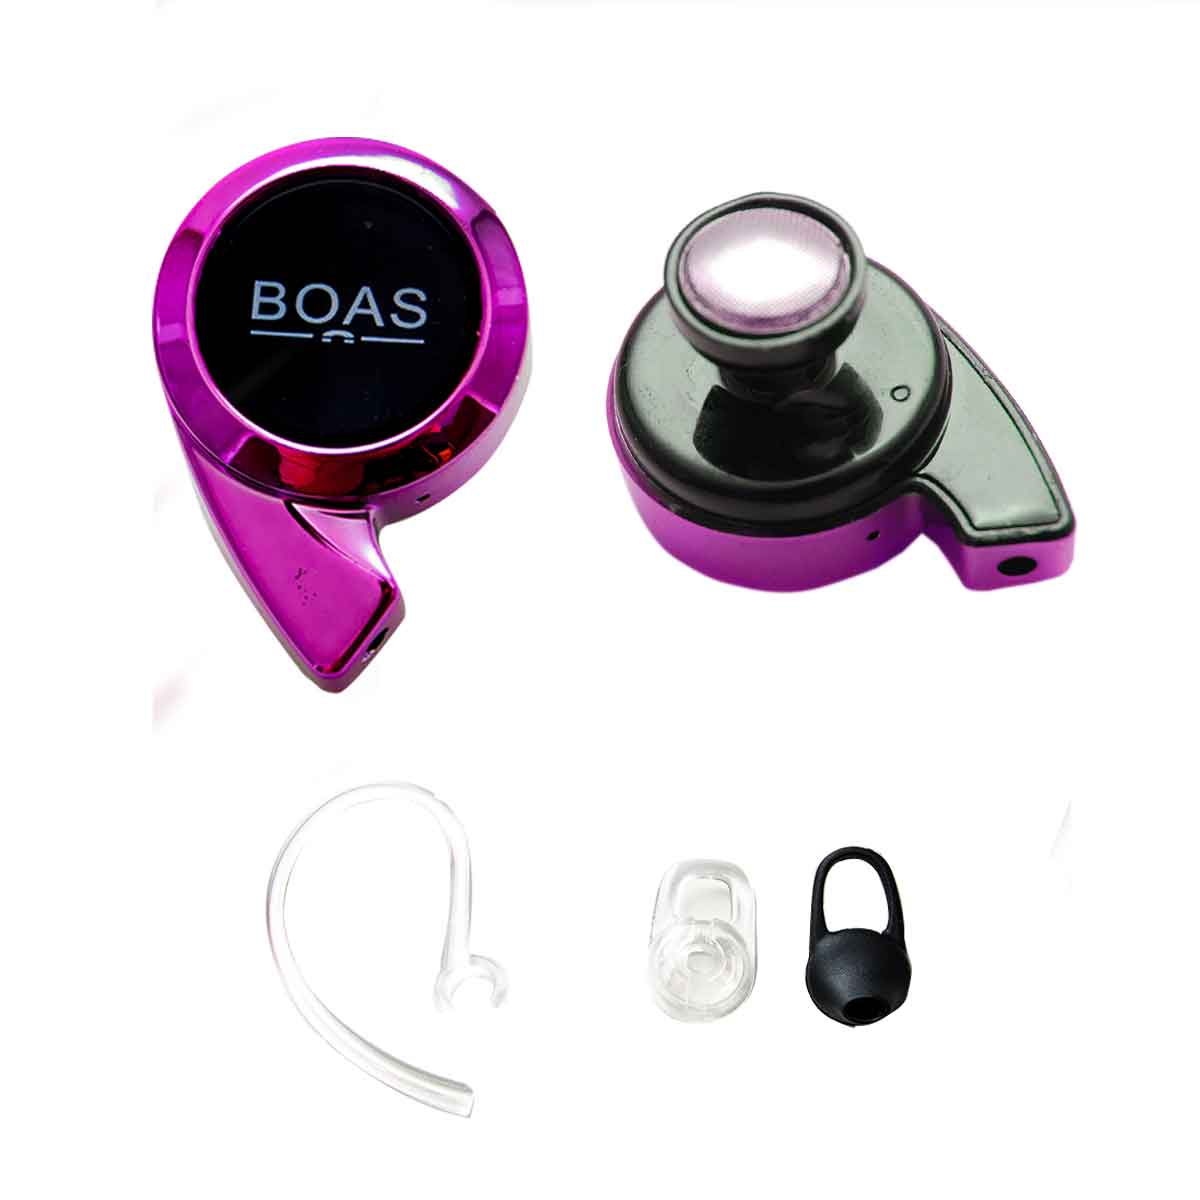 Fone Ouvido Bluetooth Universal Mini Iphone Android